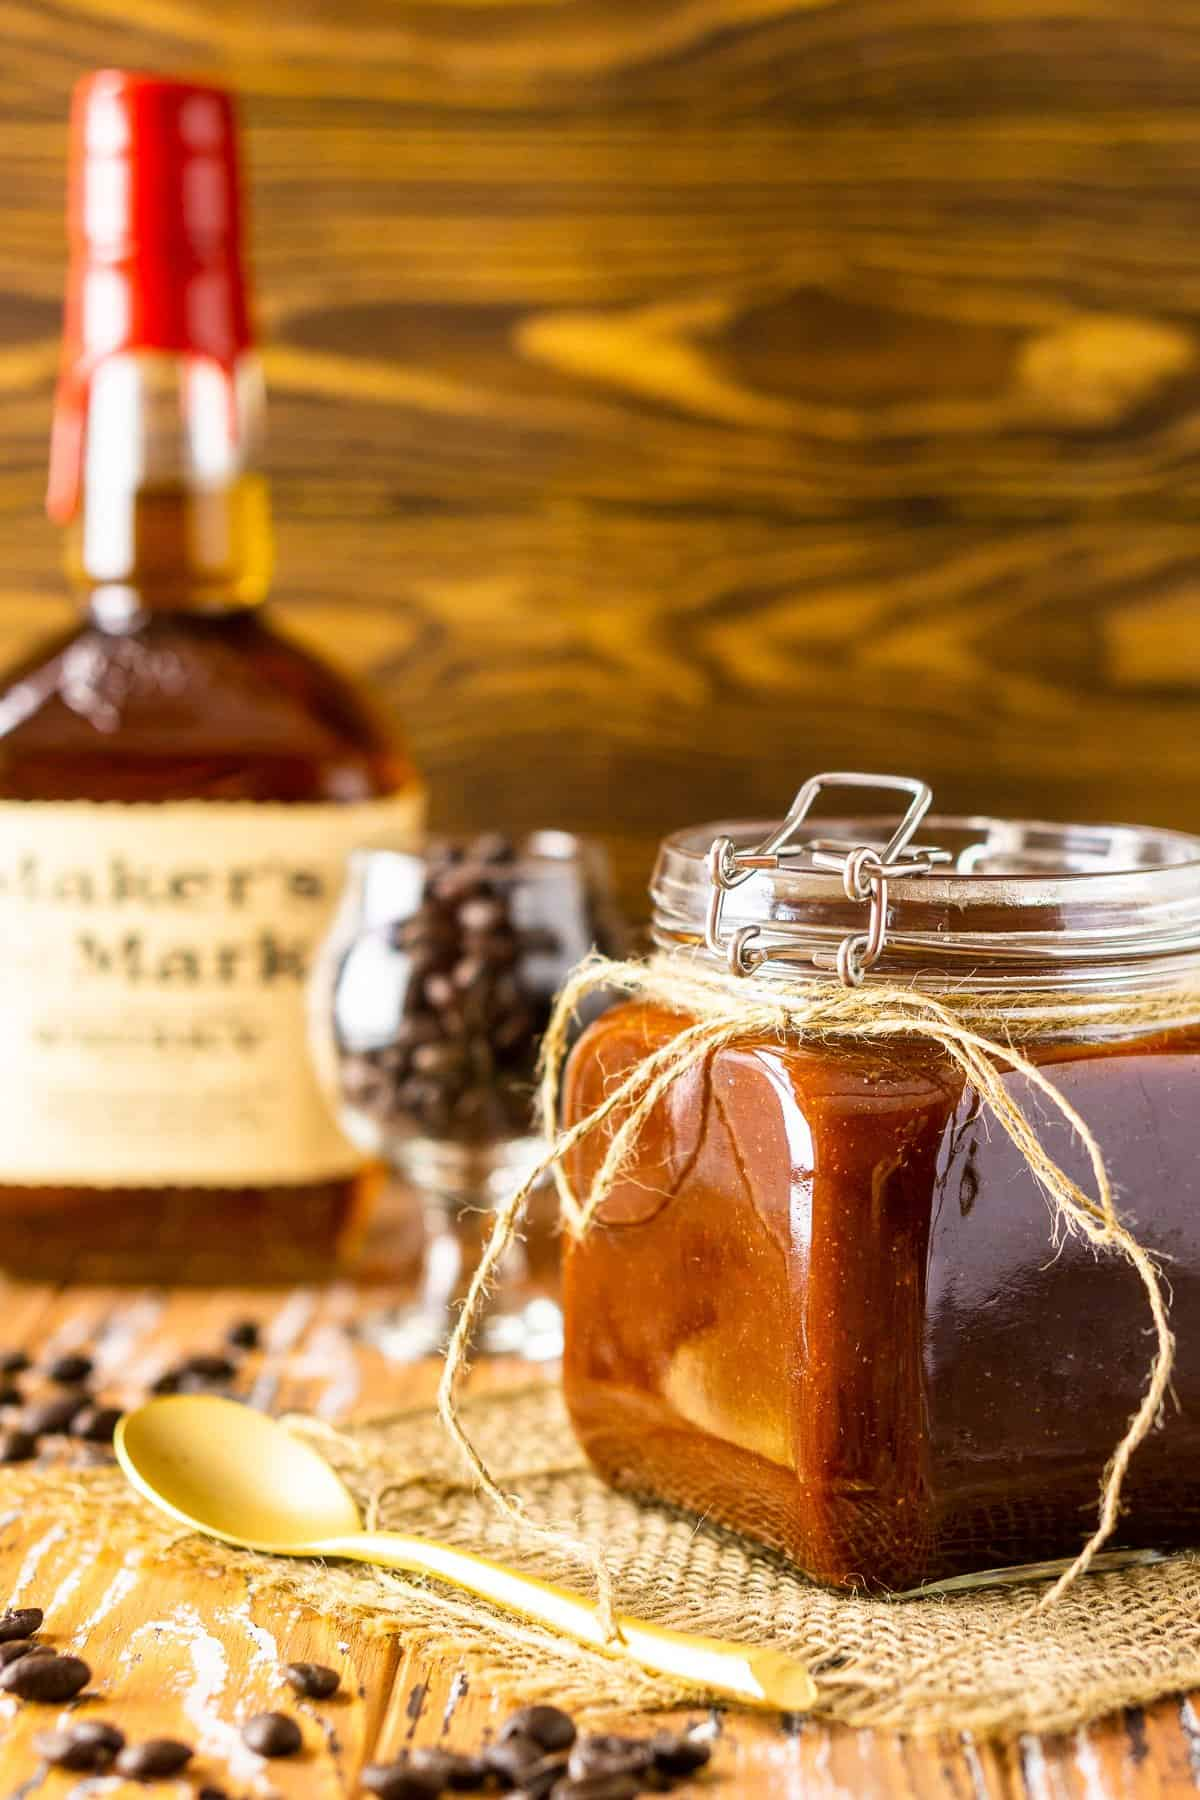 A jar of coffee-bourbon BBQ sauce with a bottle of Maker's Mark and glass of coffee beans in the background.